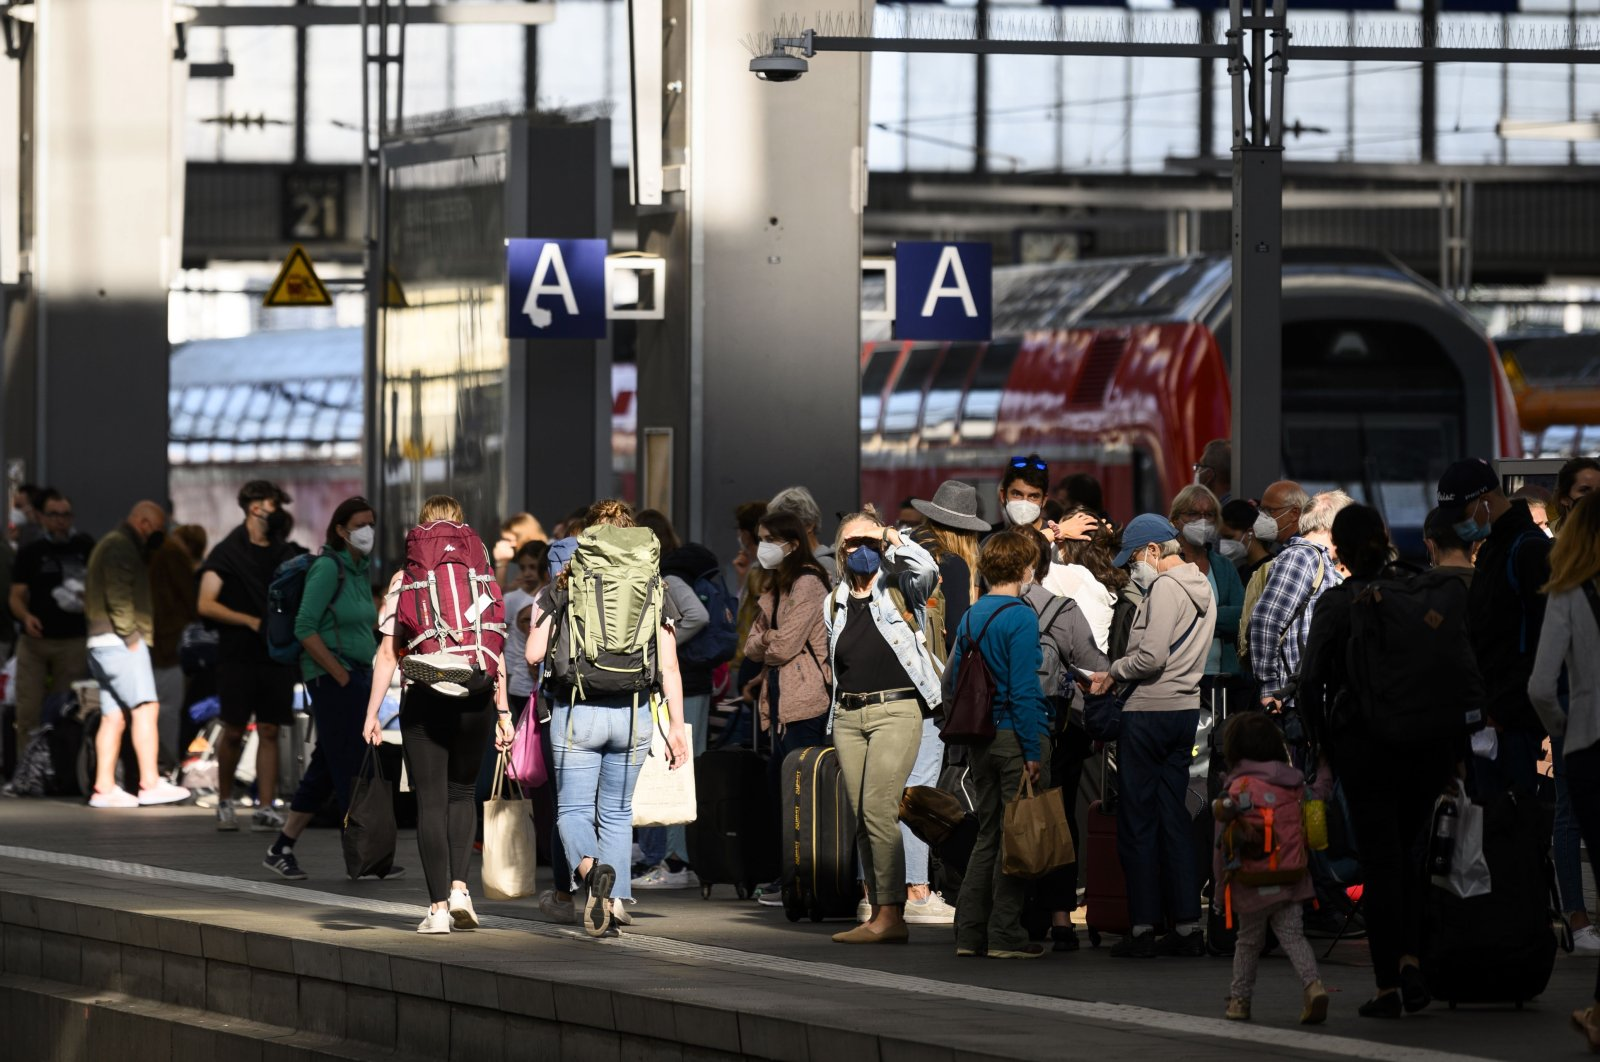 Travelers wait during a warning strike in railway operations in Germany at Central Railway Station in Munich, Germany, Aug. 11, 2021. (EPA Photo)